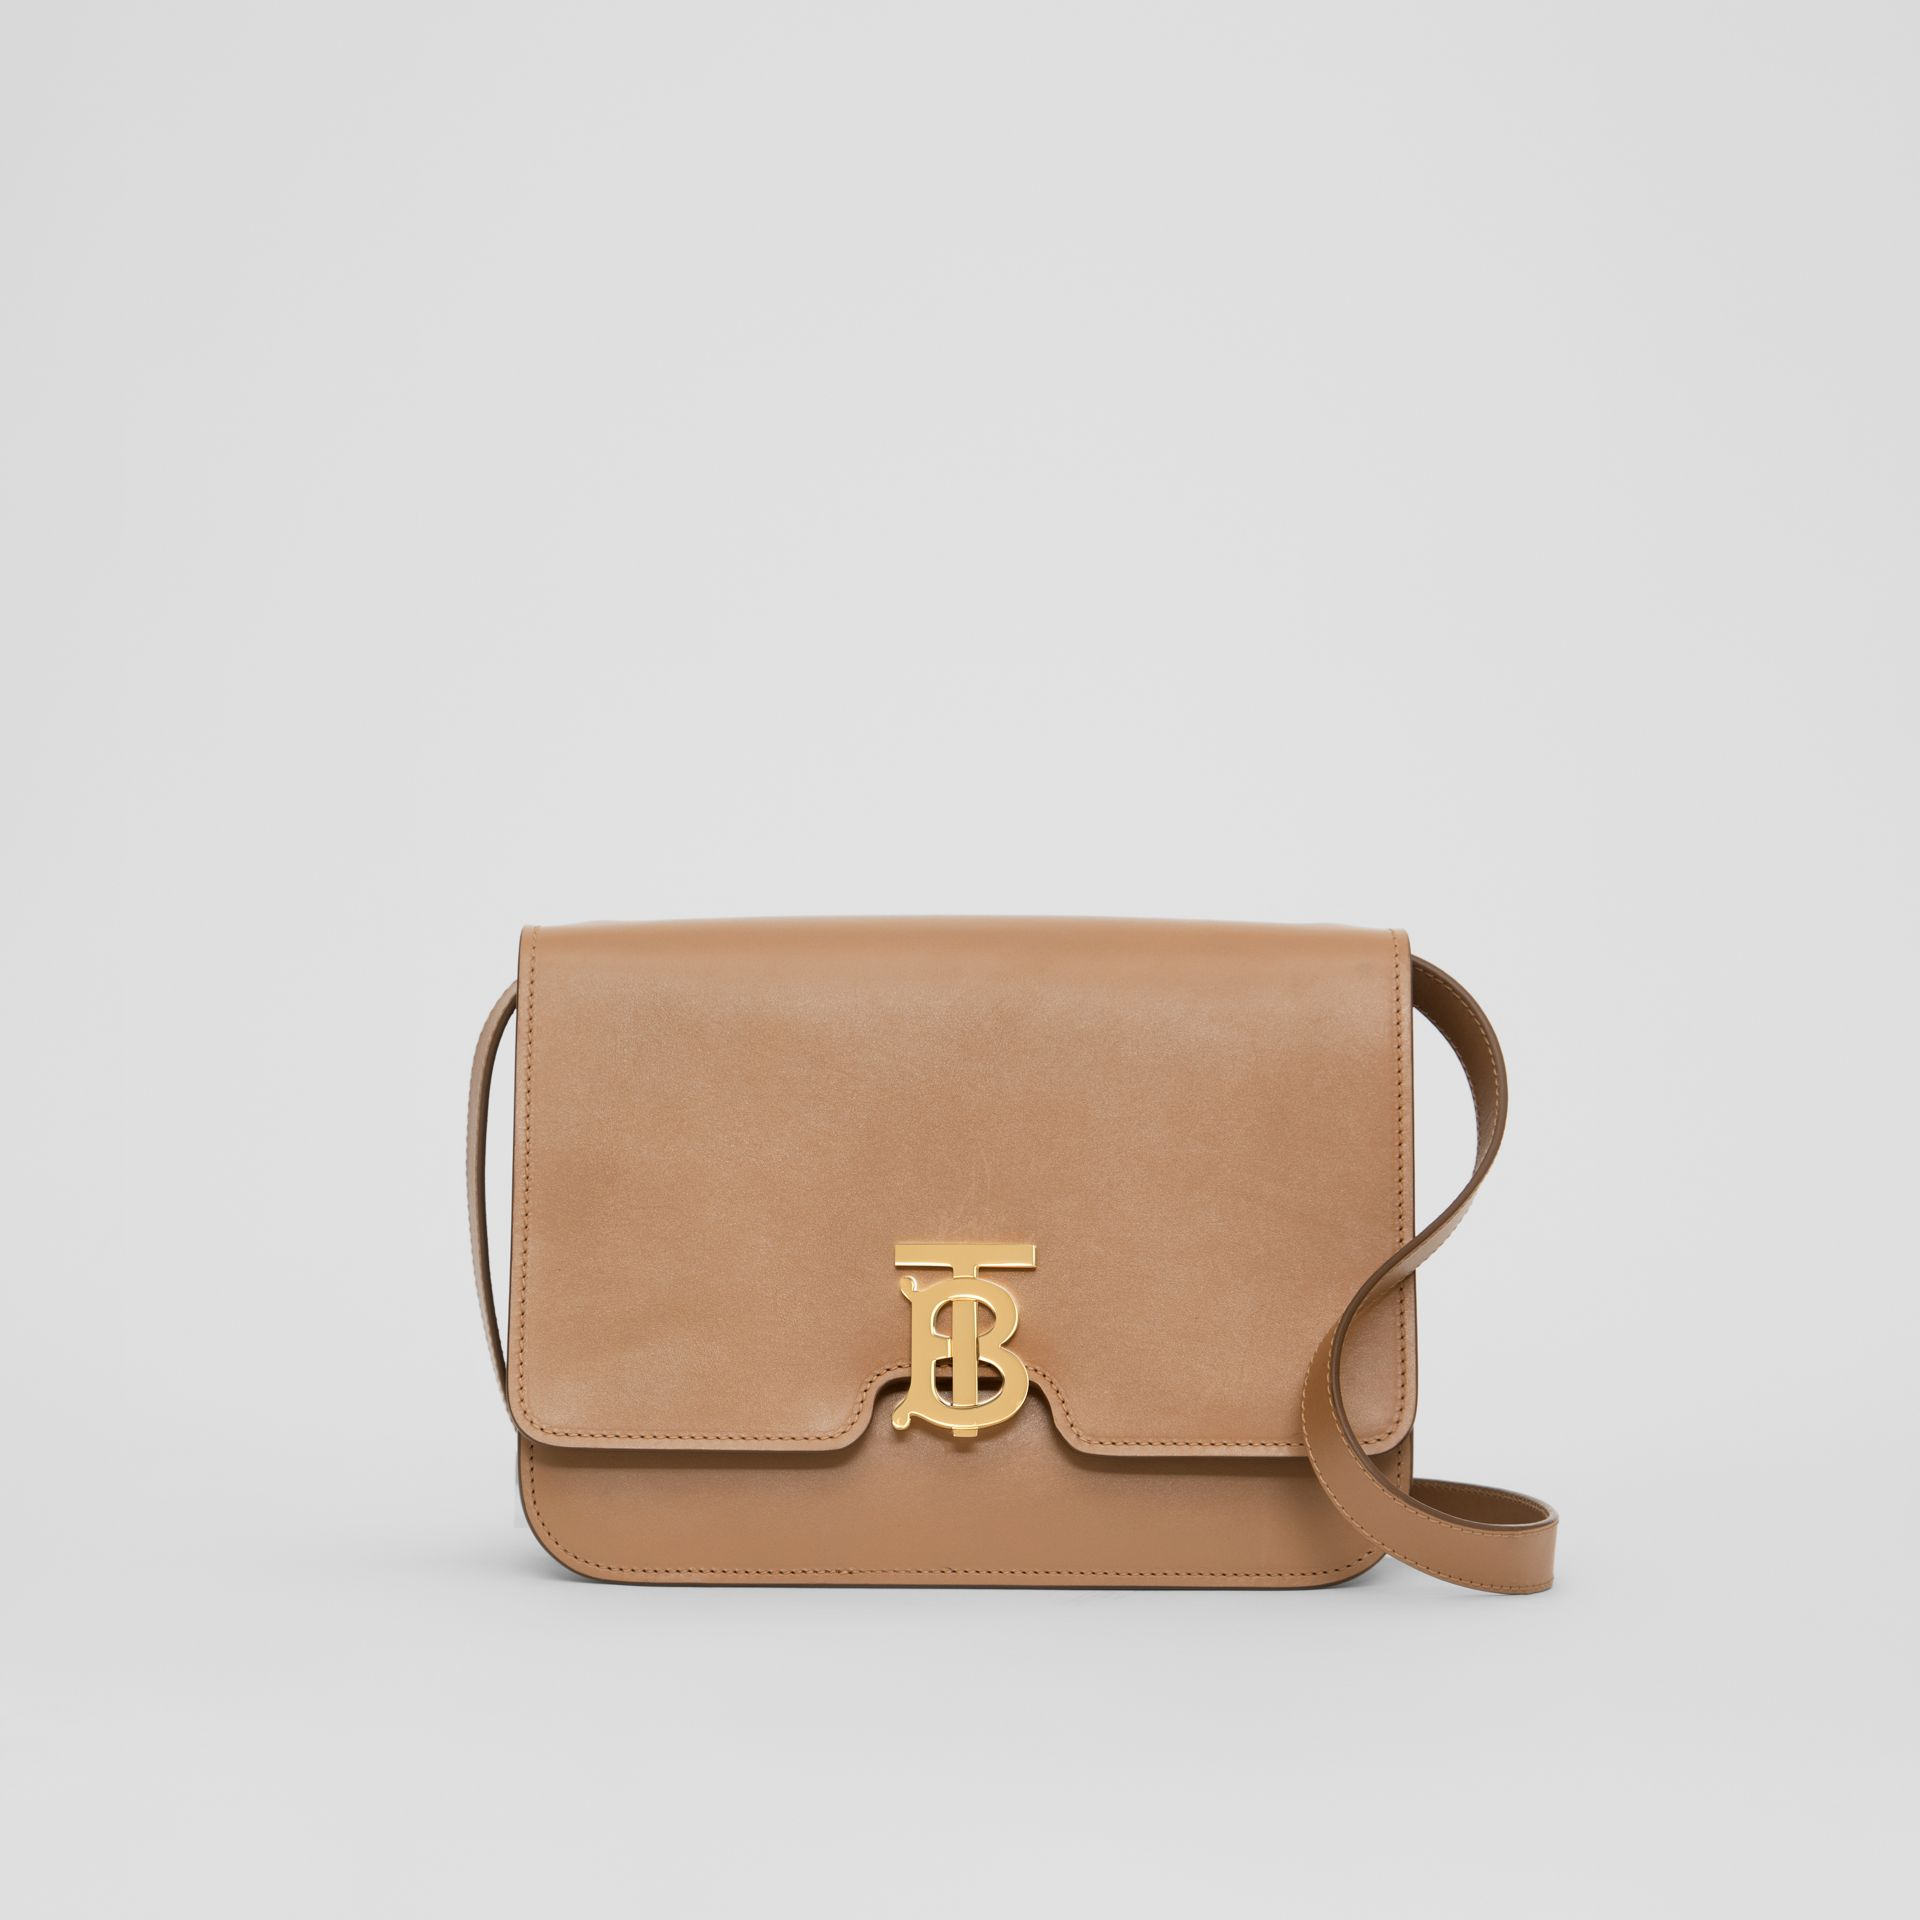 Medium Leather TB Bag in Light Camel - Women | Burberry Hong Kong - gallery image 0